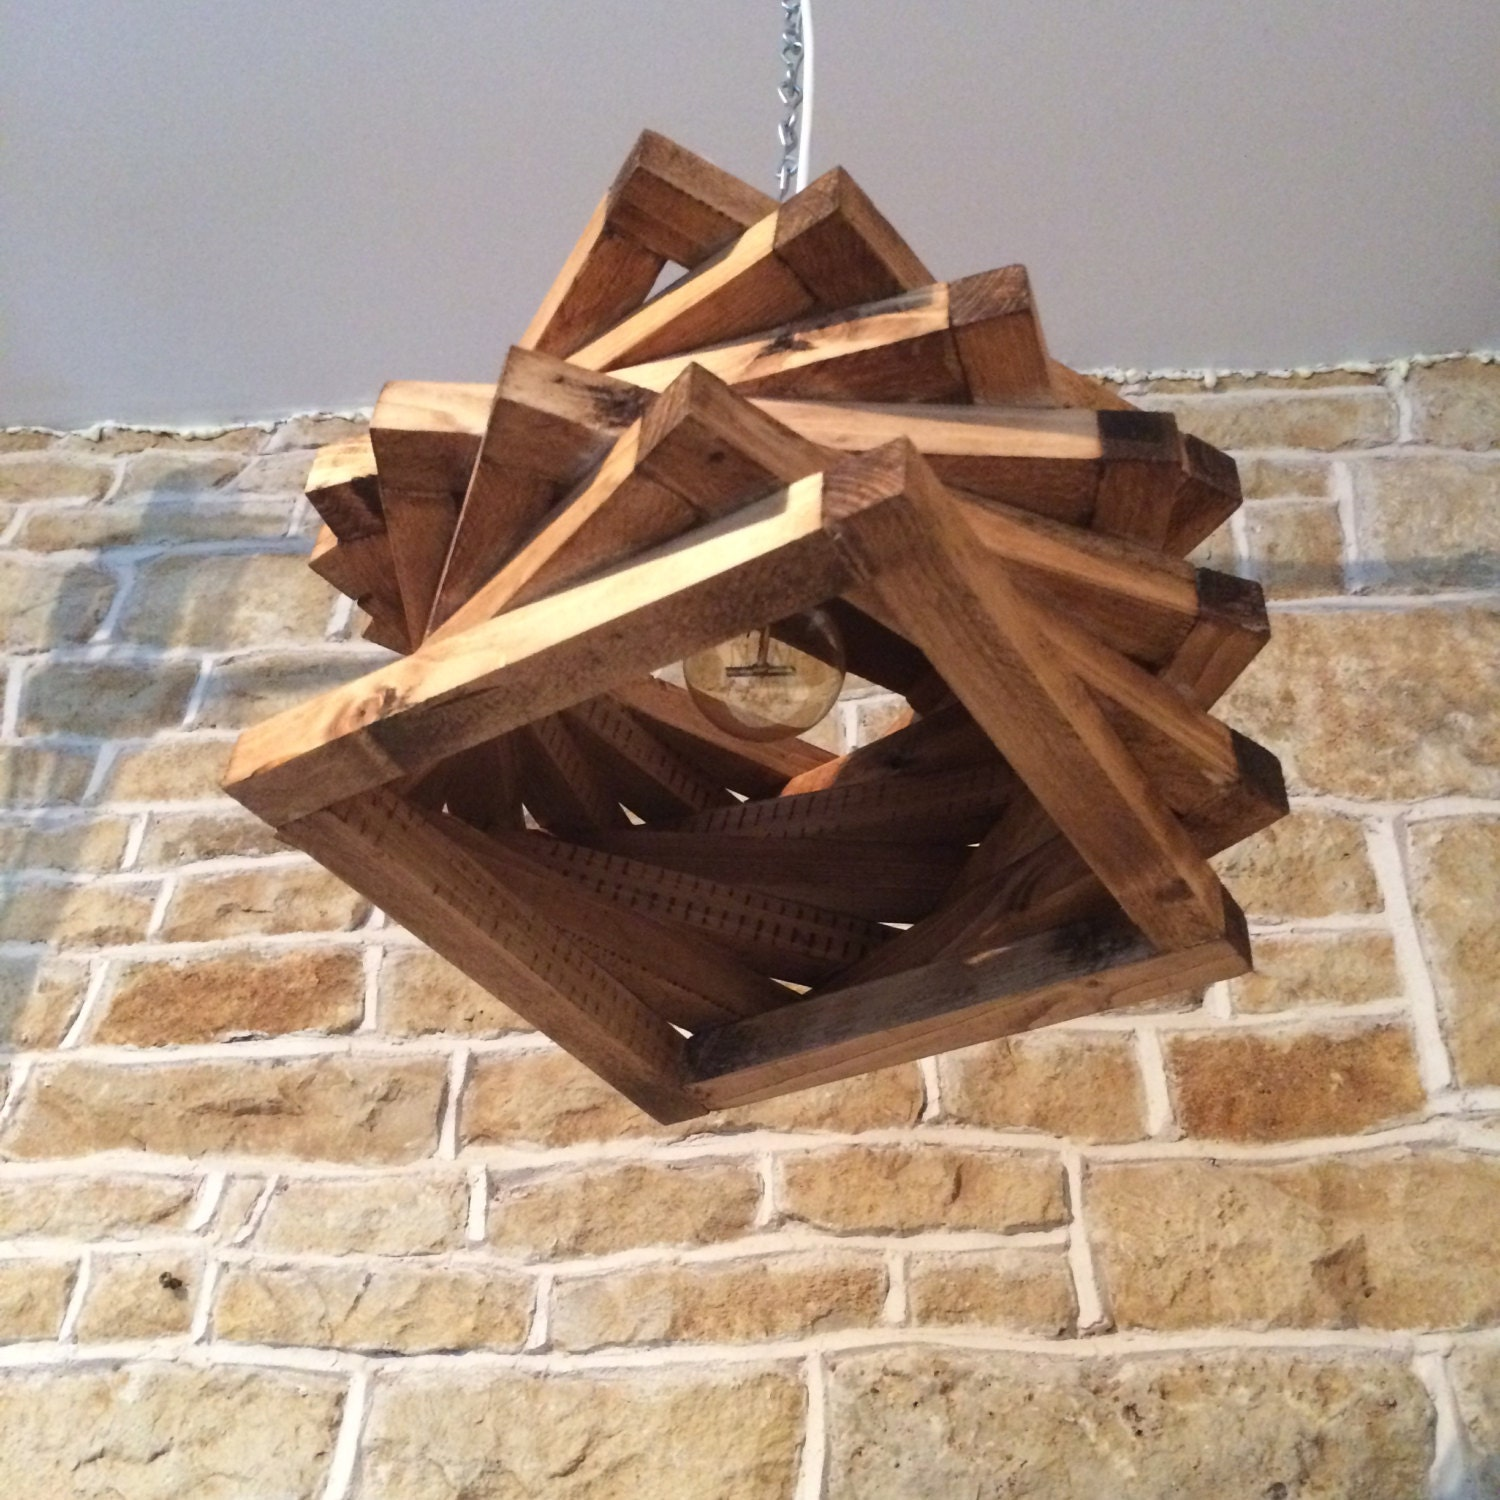 Rustic Ceiling Light Rustic Light Fixture Rustic Wood: Rustic Wood Light, Rustic Ceiling Light, Wood Light